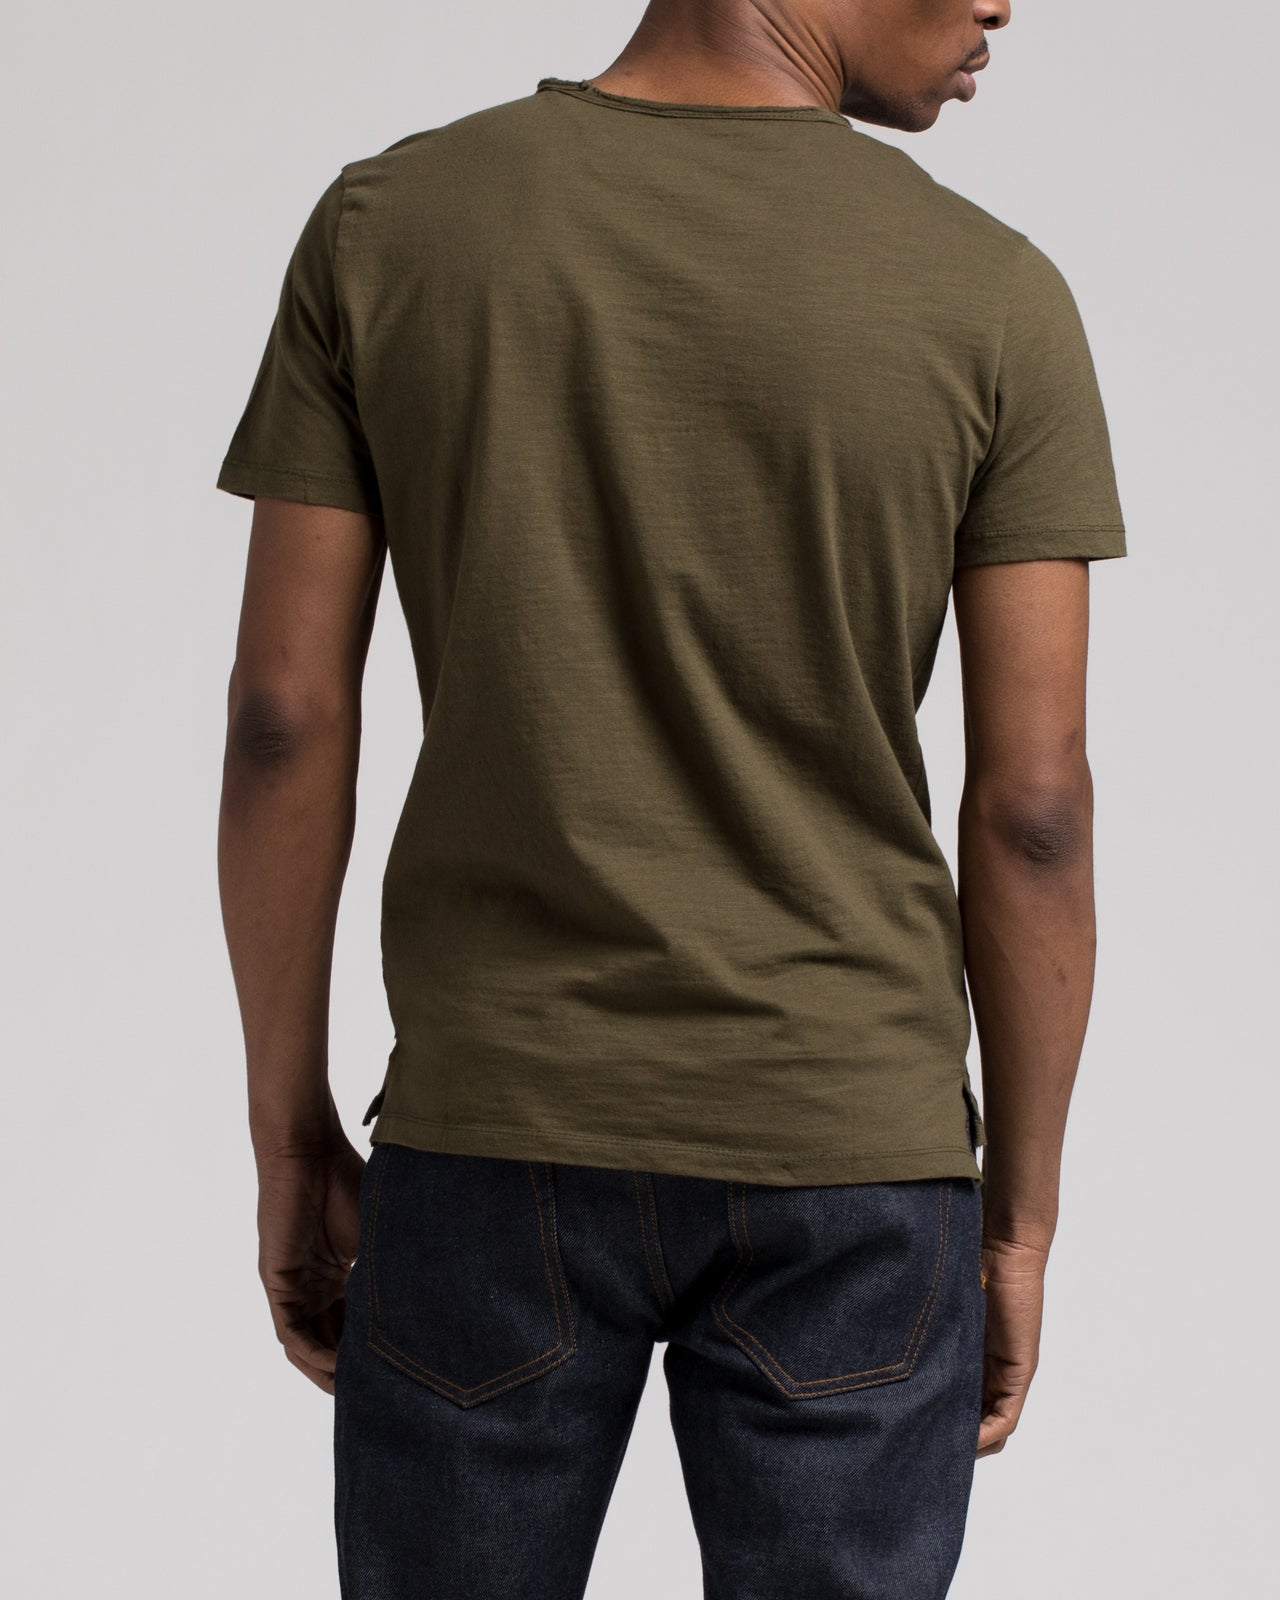 Roll Neck Tee - Color: Olive | Green